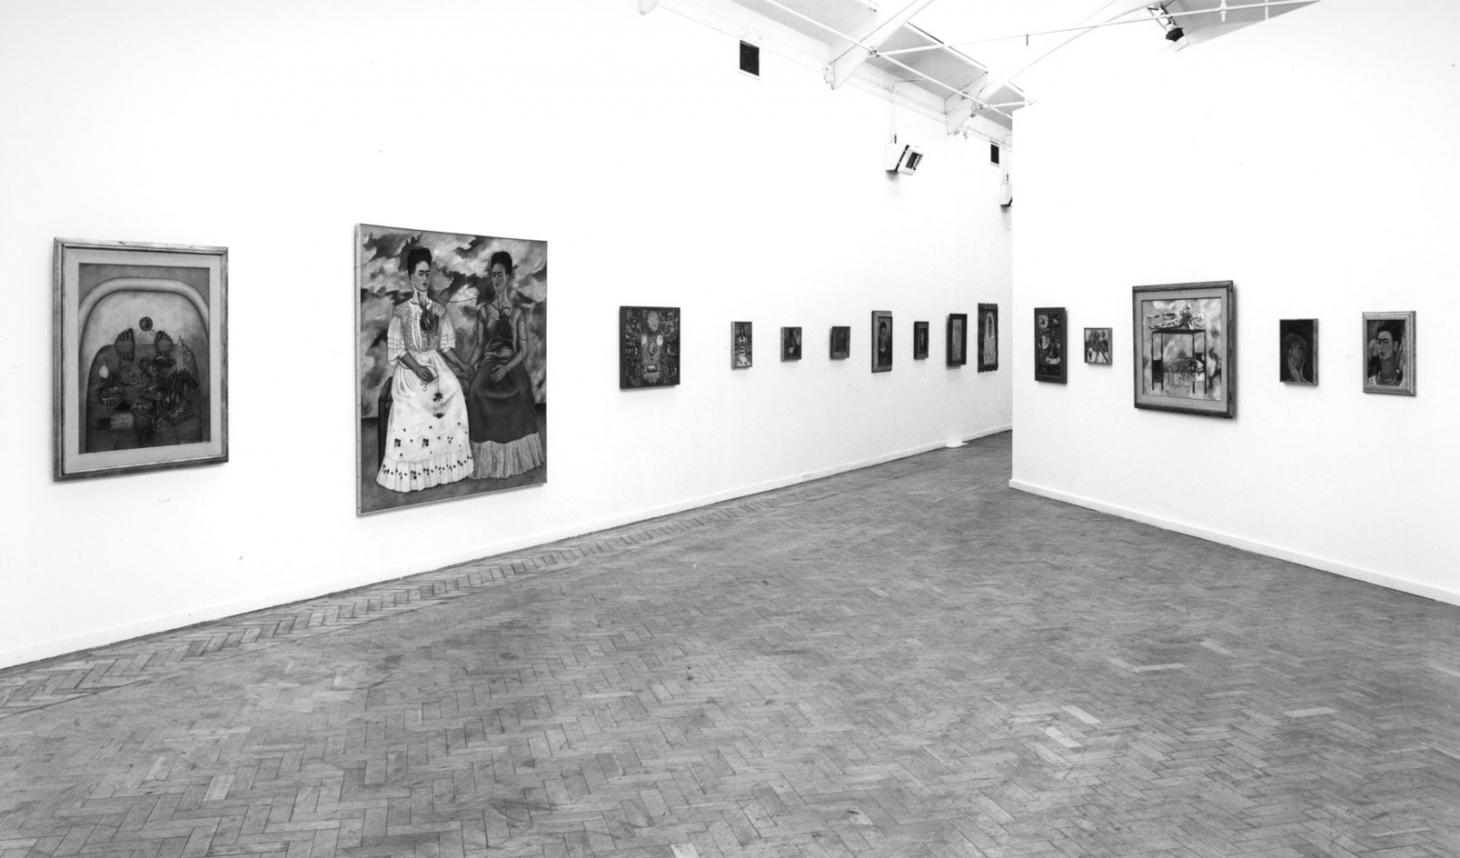 Installation view of Frida Kahlo, 1982 at Whitechapel Gallery London